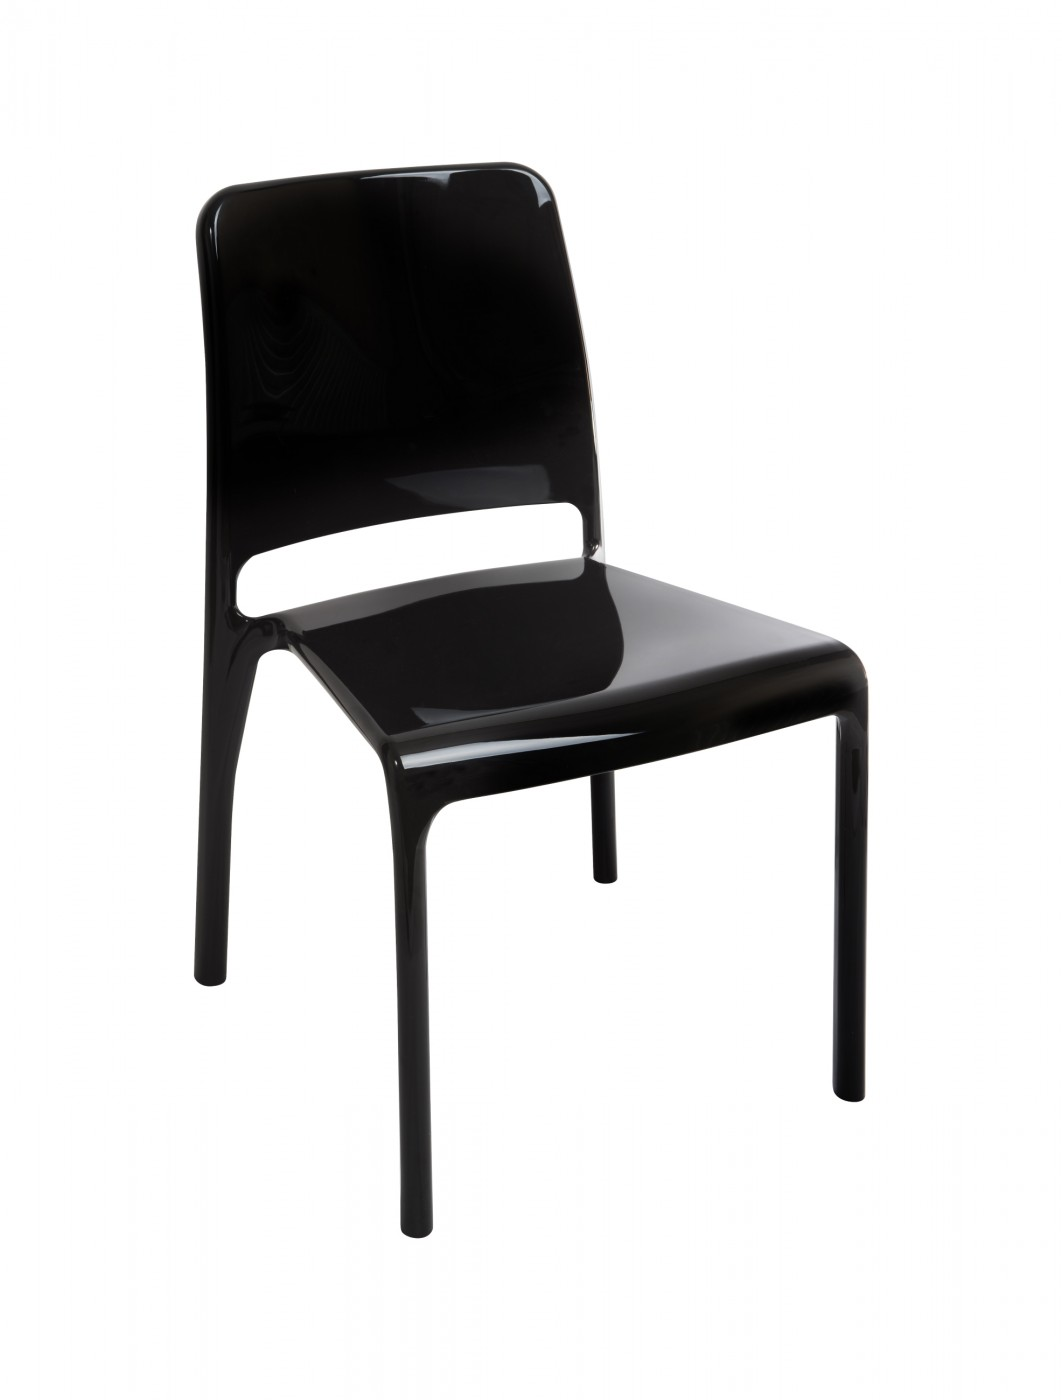 Clarity Designer Polycarbonate Chairs 6908 (Black/White)   4 Pack    Enlarged View